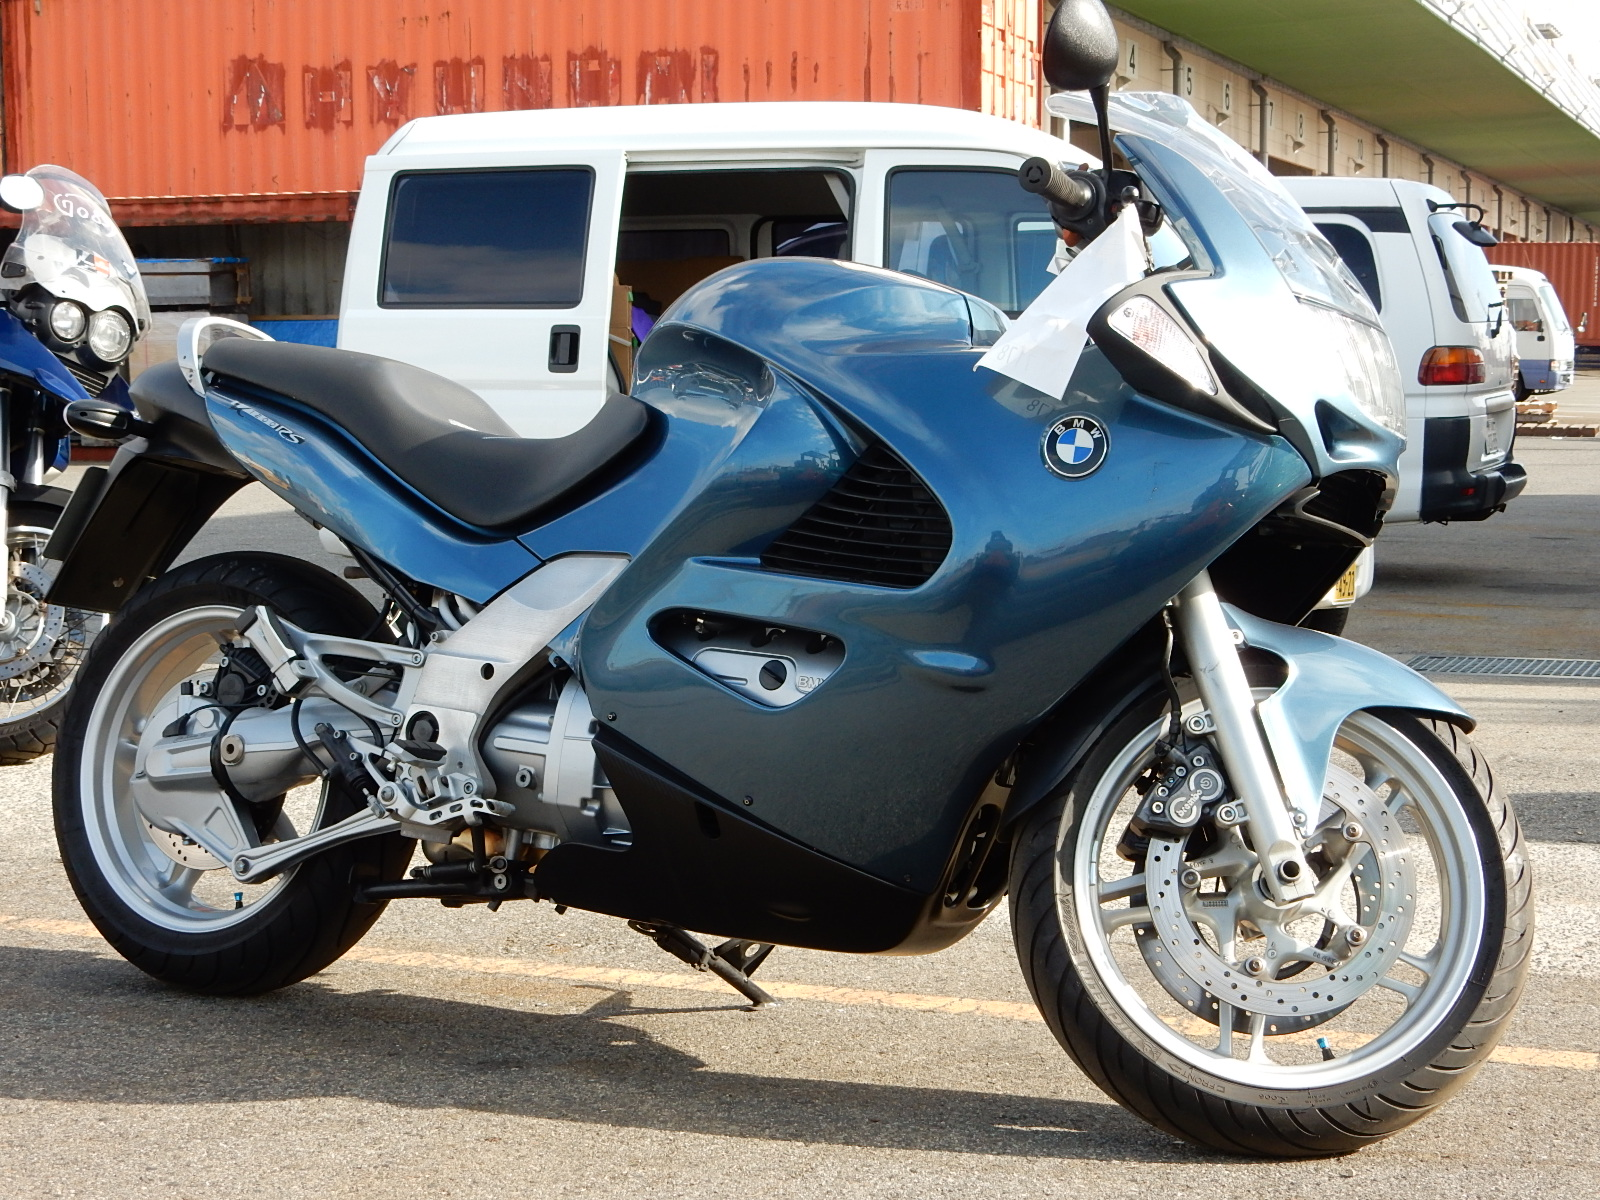 BMW K1200RS 2003 images #6932